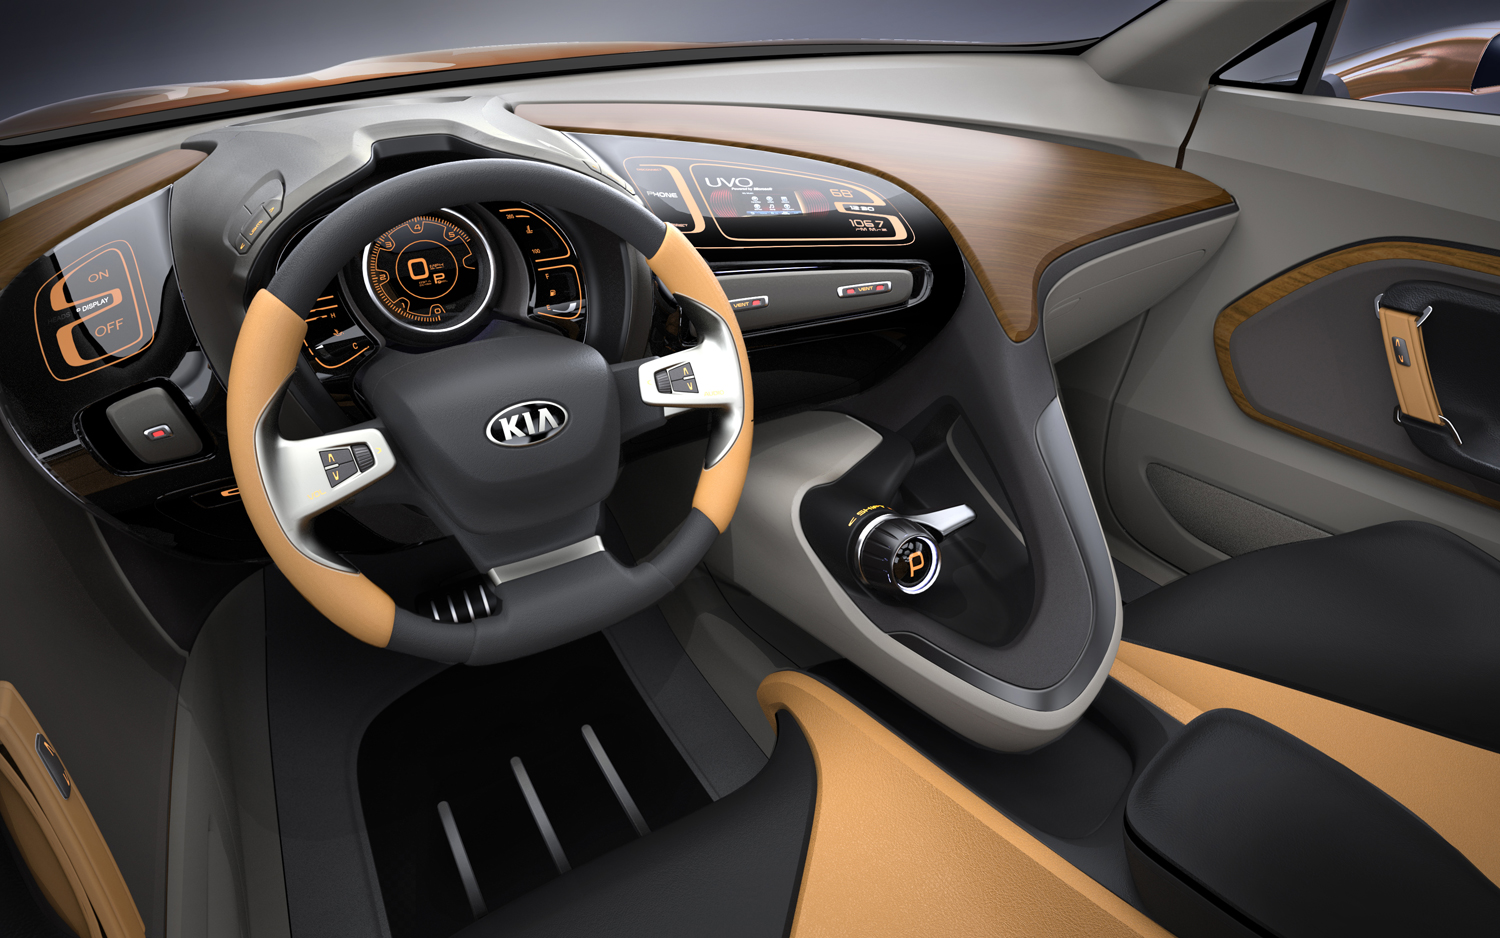 astounding-design-of-the-brown-and-black-seat-ideas-as-the-kia-rio-2015-interior-with-grey-accents